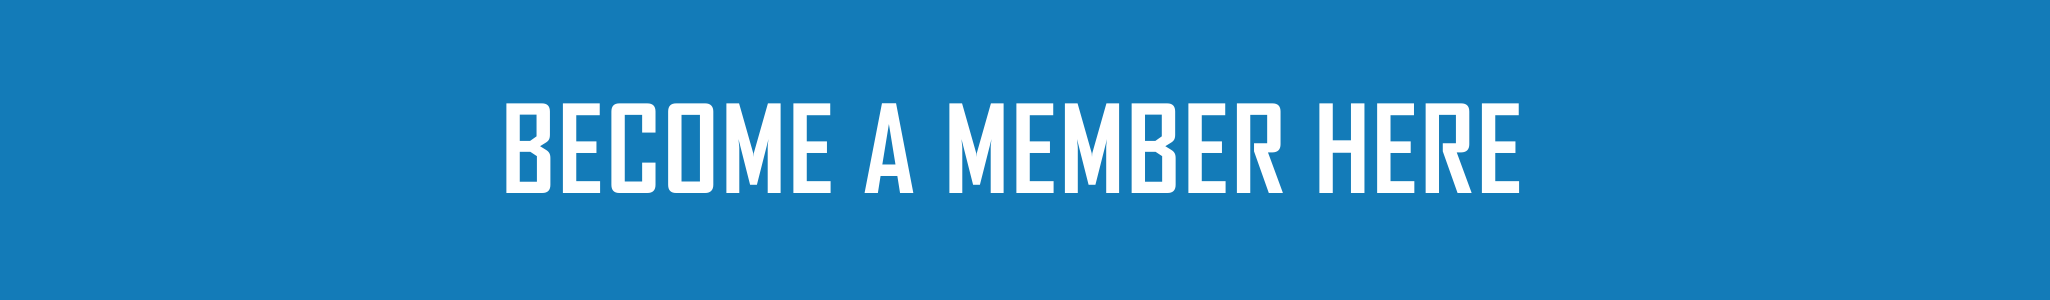 Become a member button 2